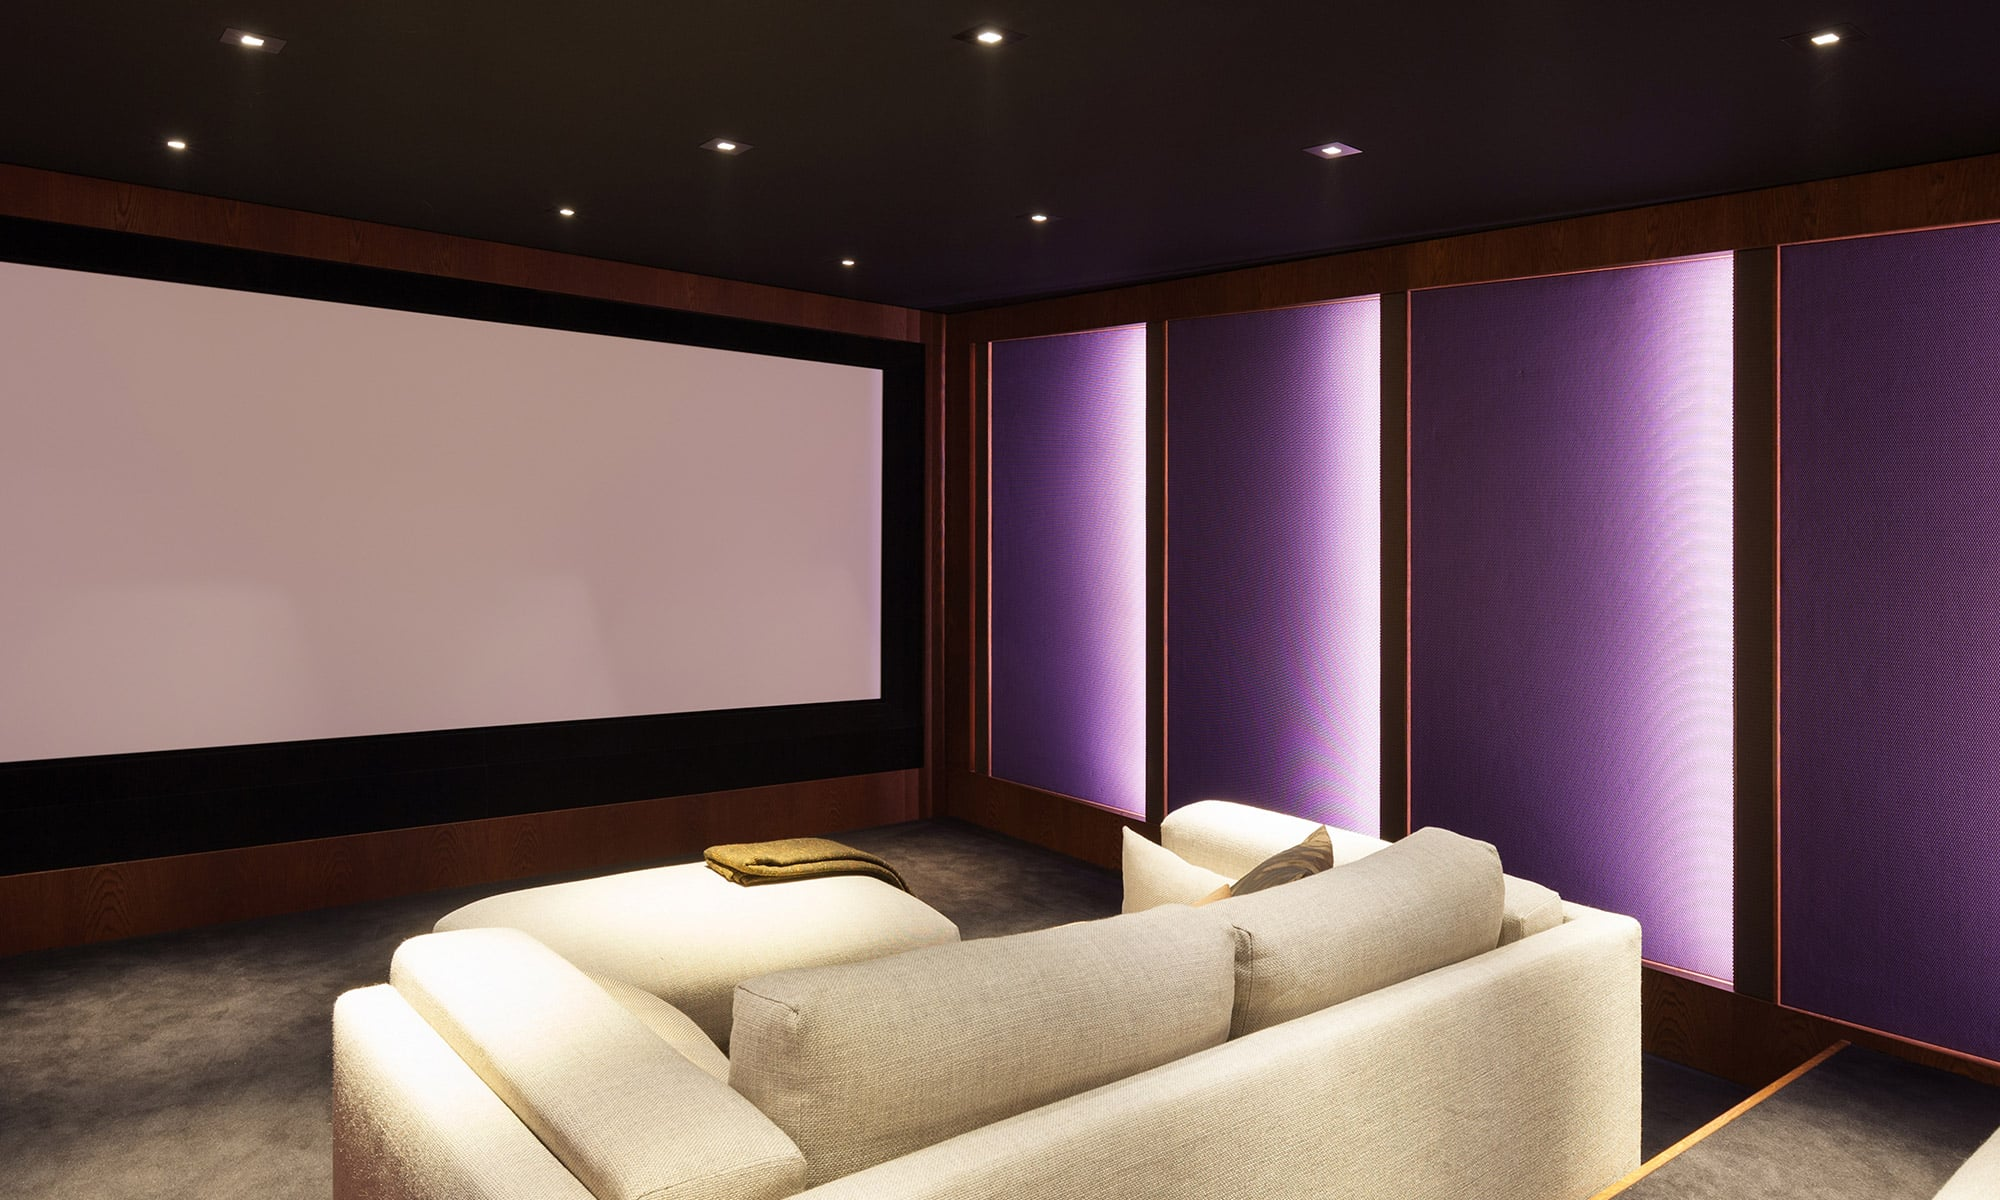 header-2 How to Replicate a Multiplex Cinema Experience in Your Own Home